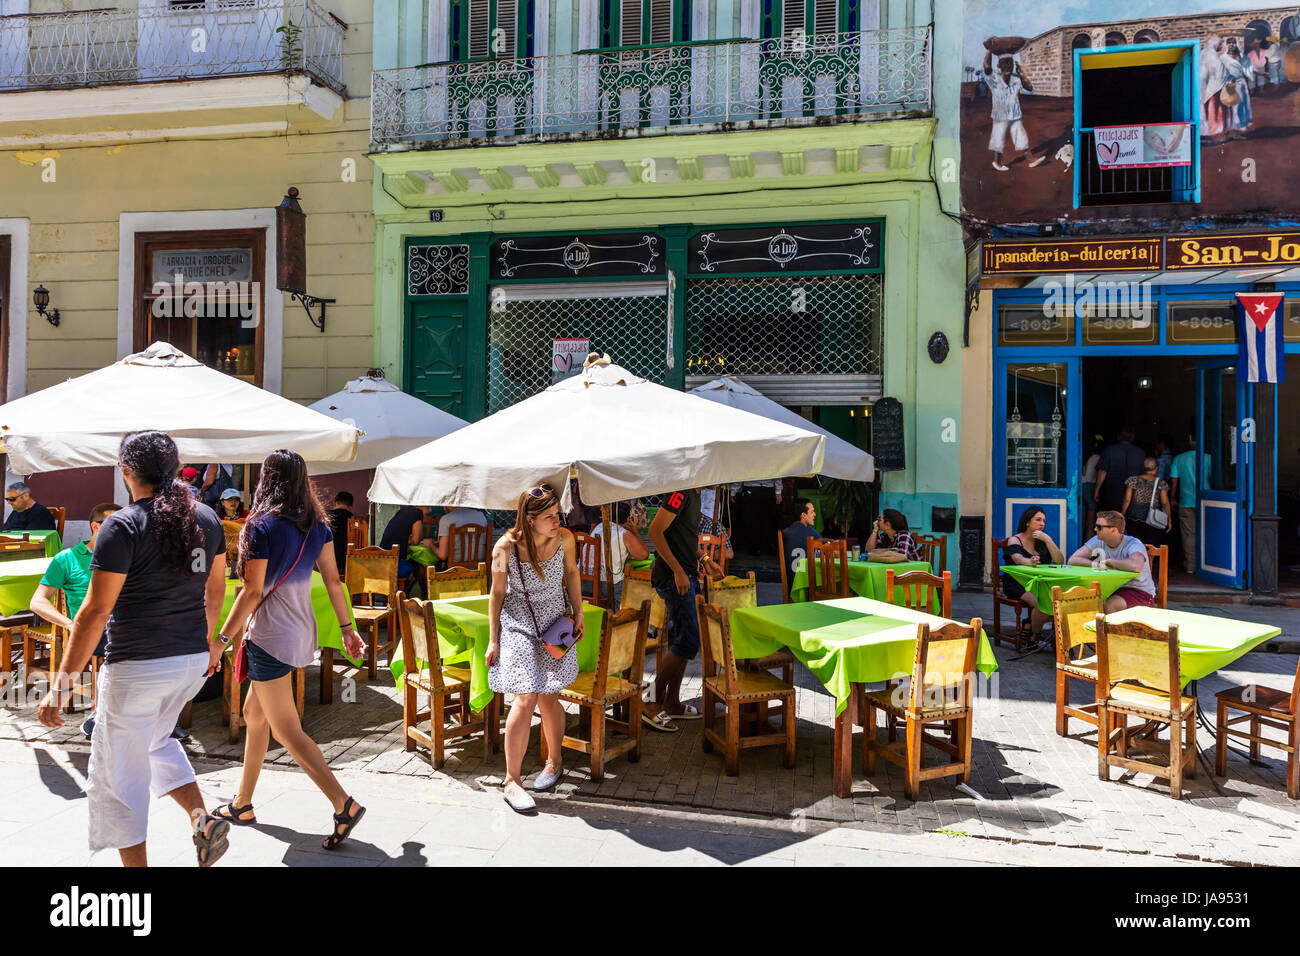 San Jose Restaurant Dining Out In Havana Cuba Eating Out